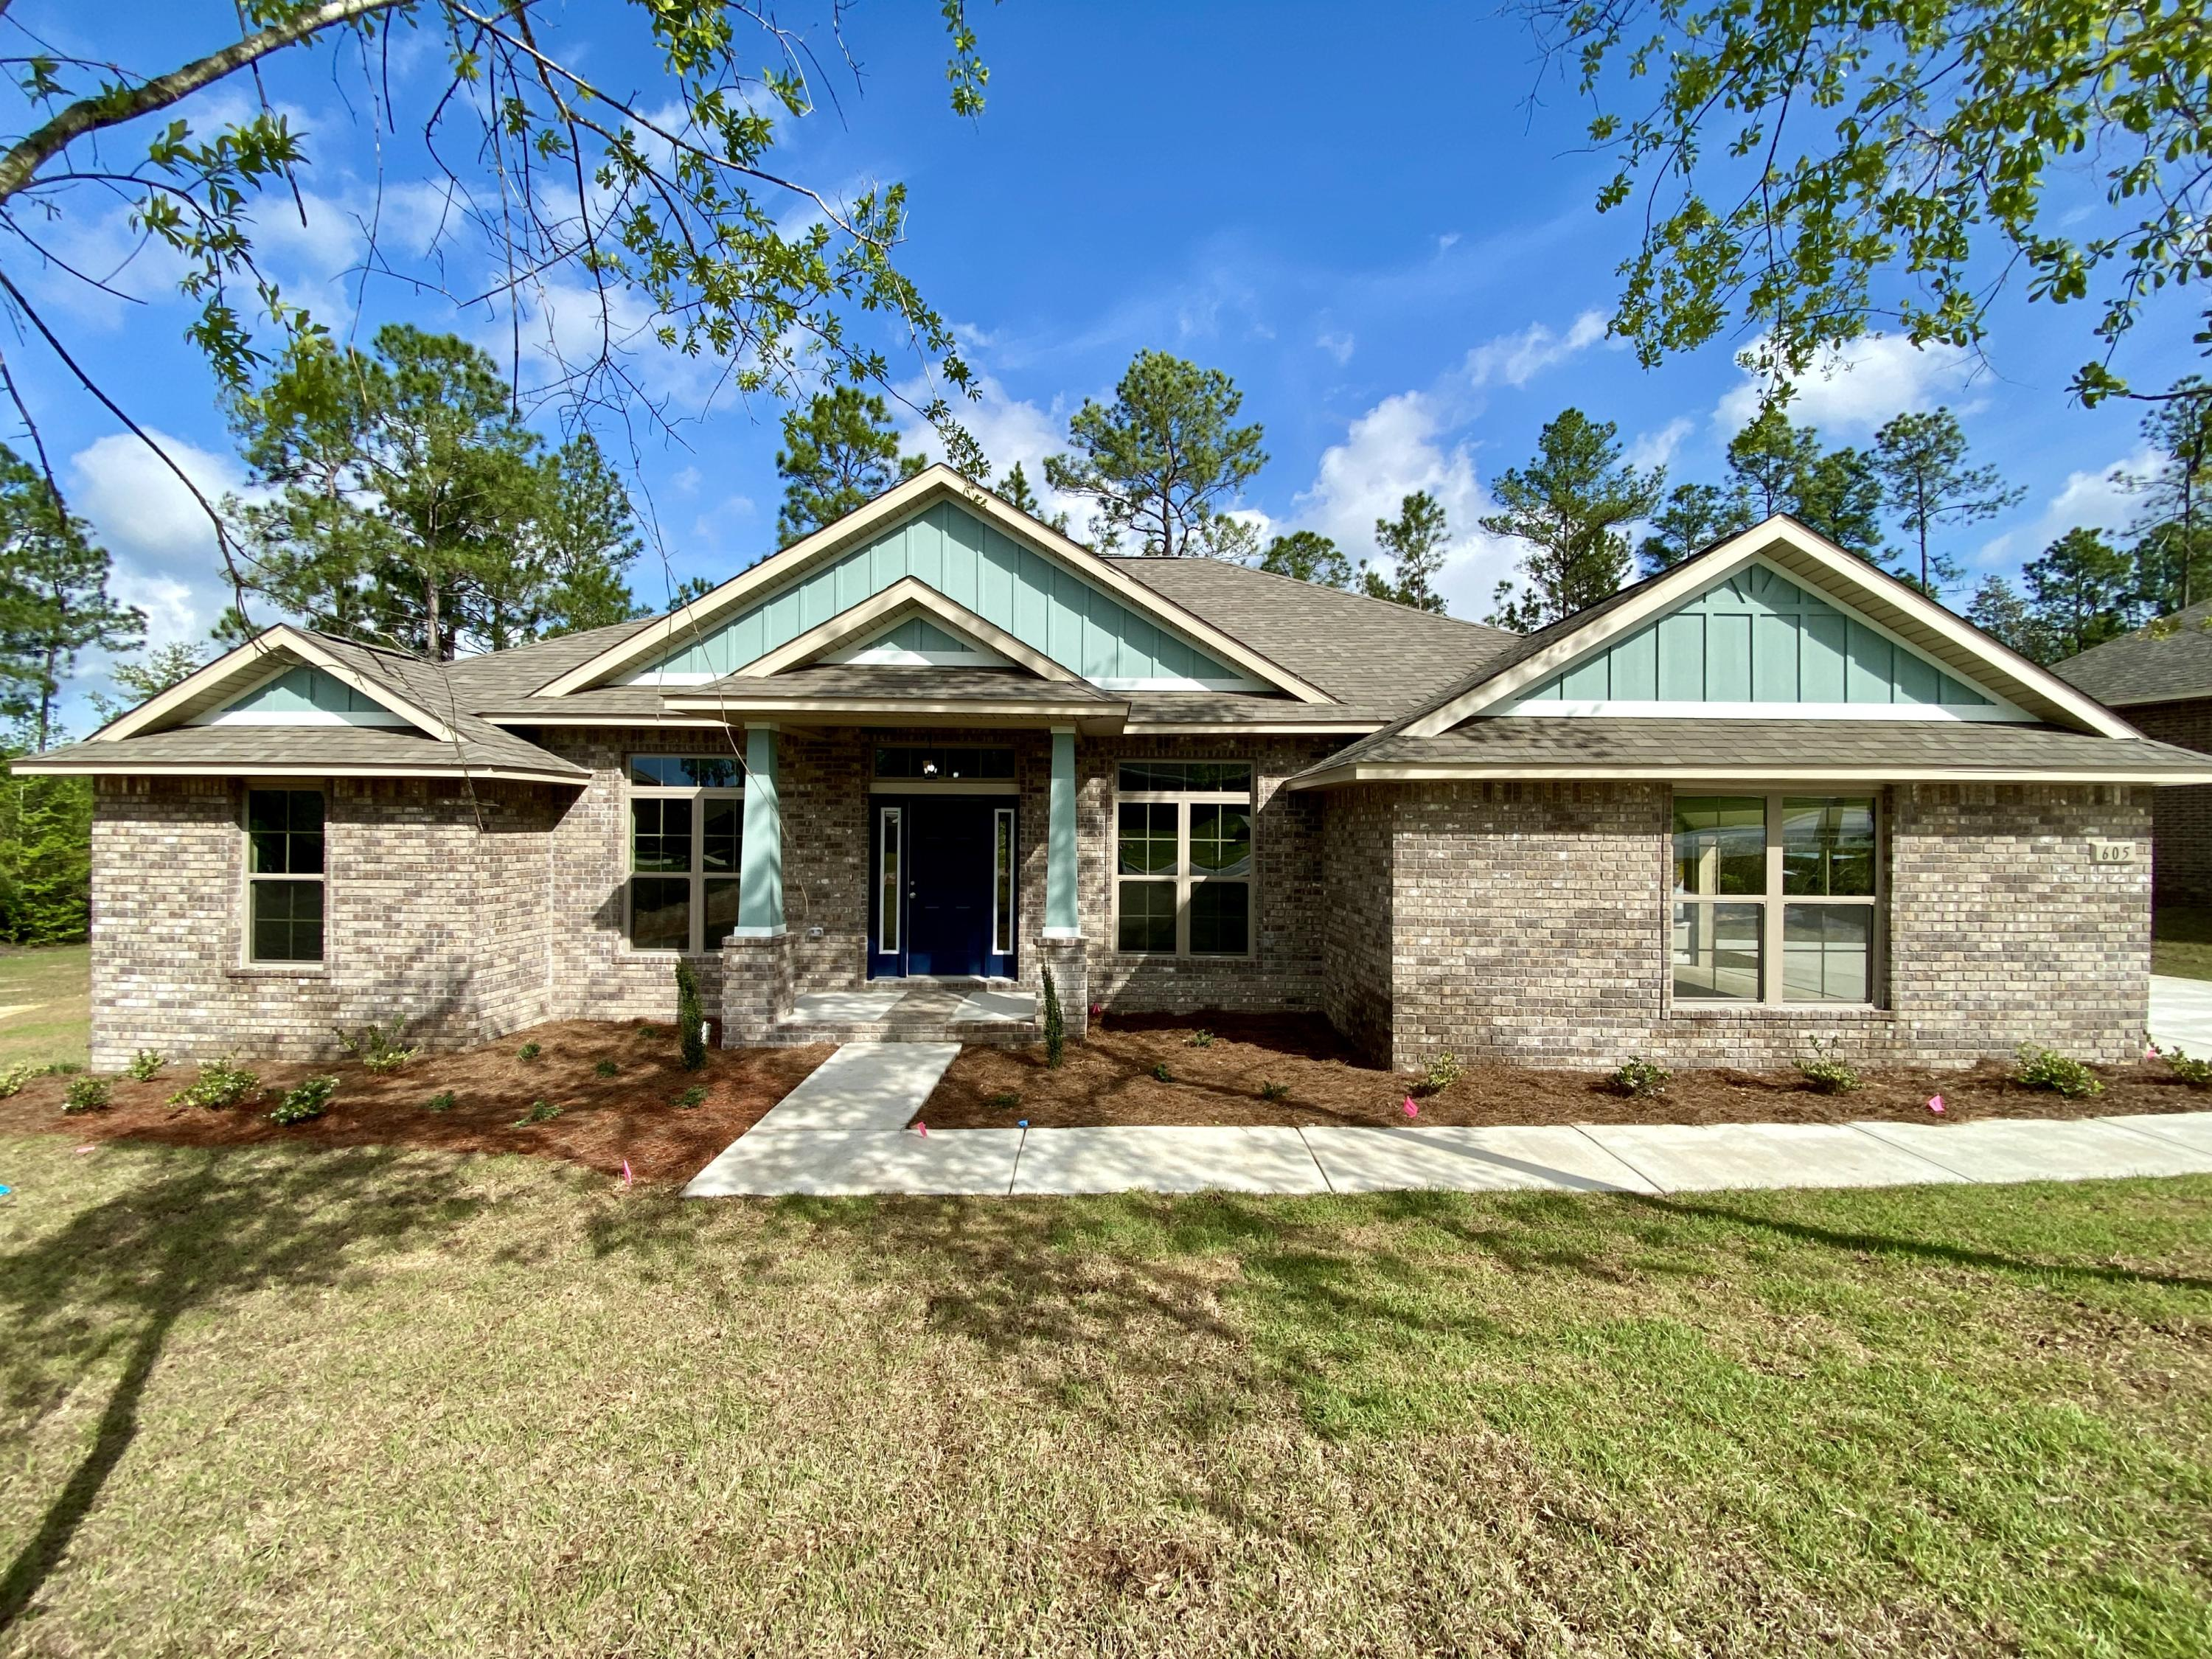 Photo of home for sale at 605 Terrier, Crestview FL